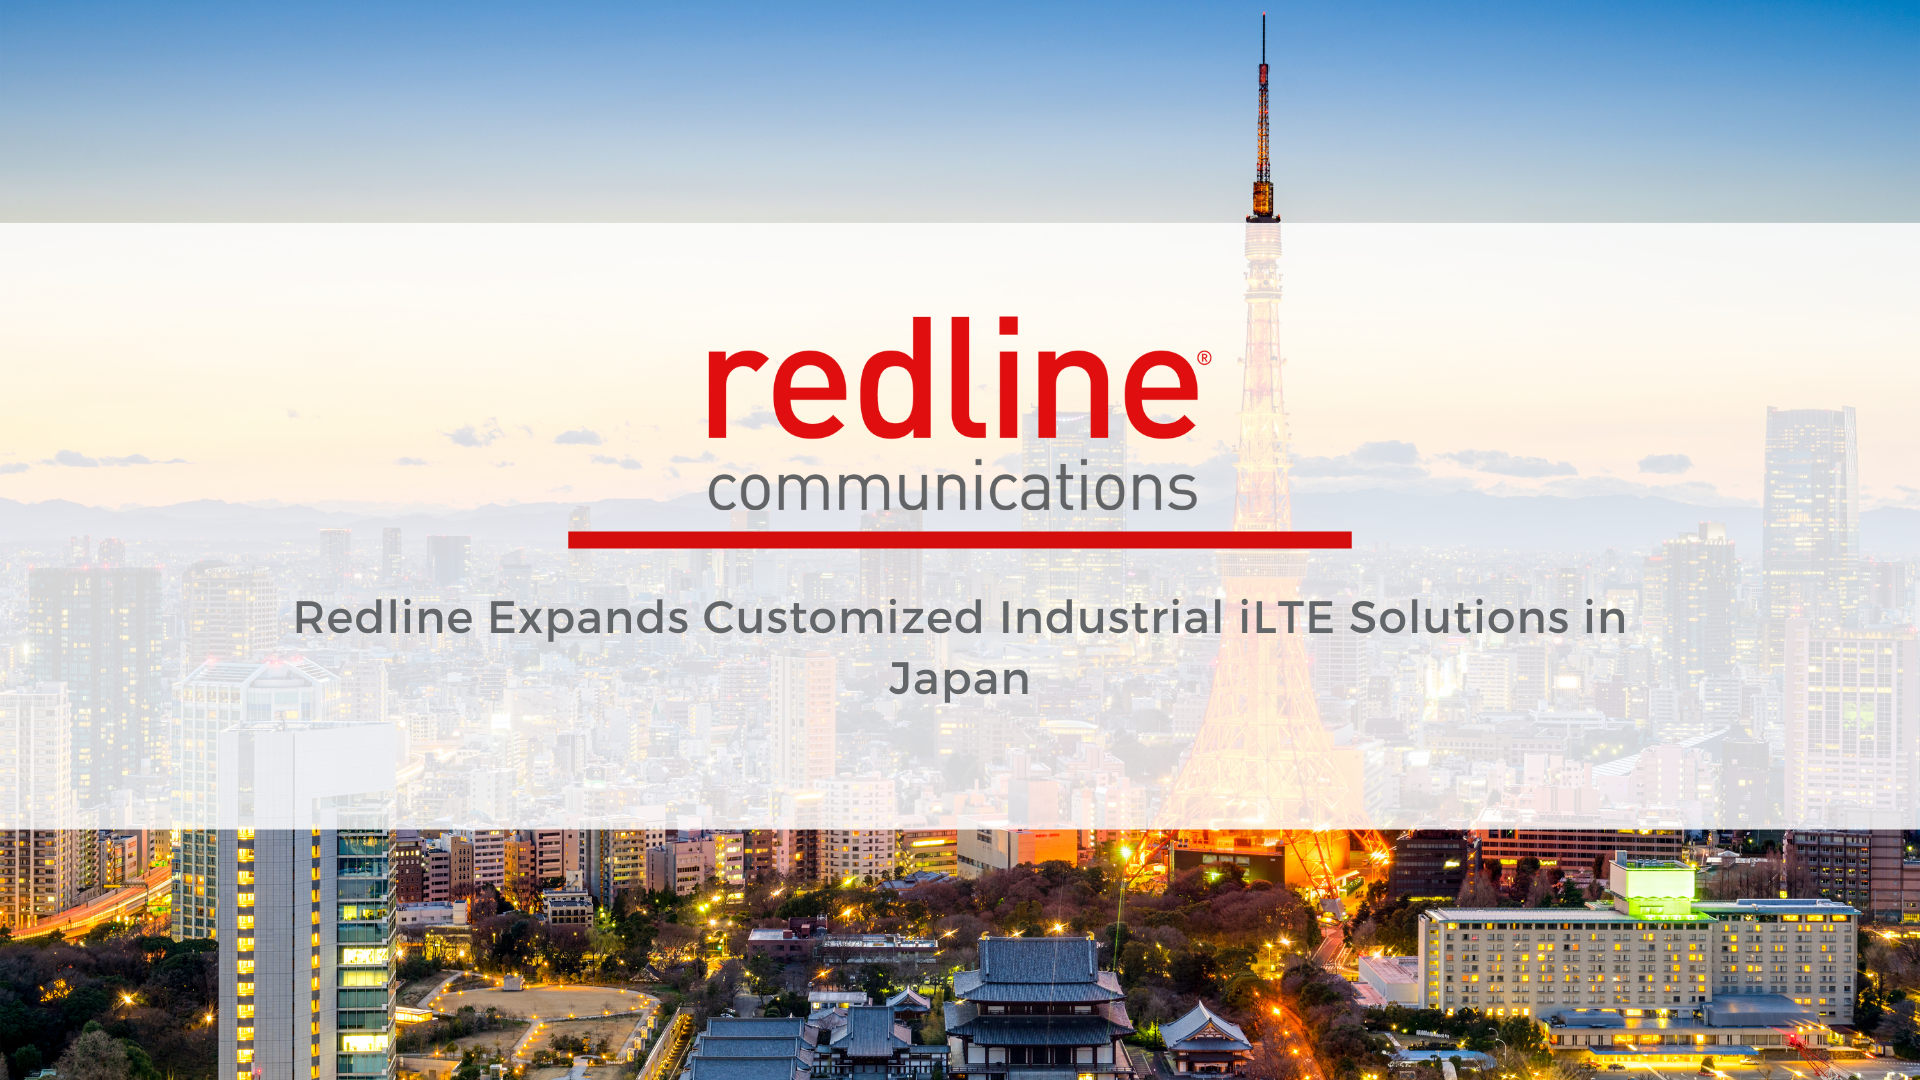 Redline Expands Customized Industrial iLTE Solutions in Japan